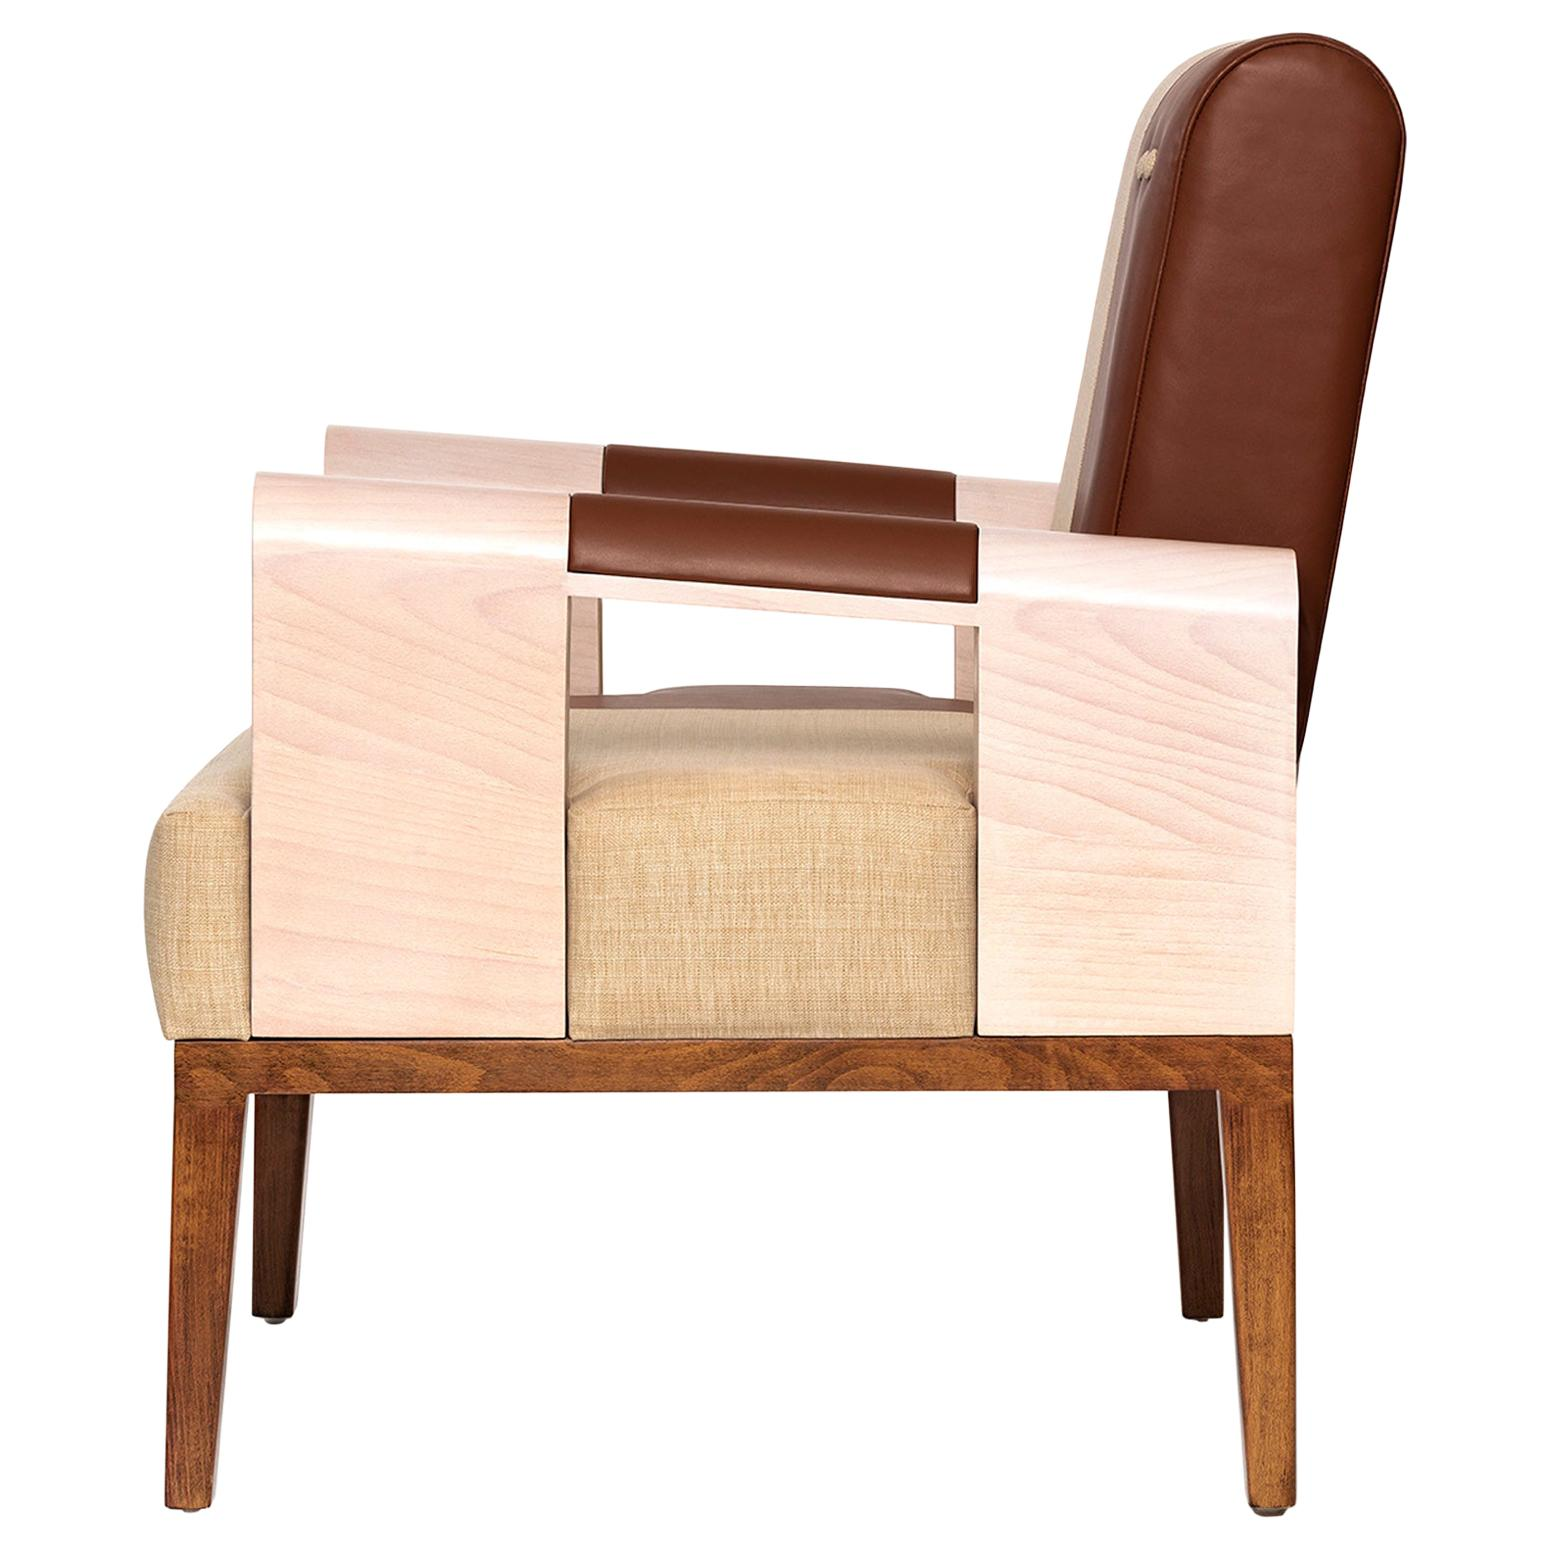 Midcentury Modern Style Solid Wood Armchair Upholstered in Textile and Leather